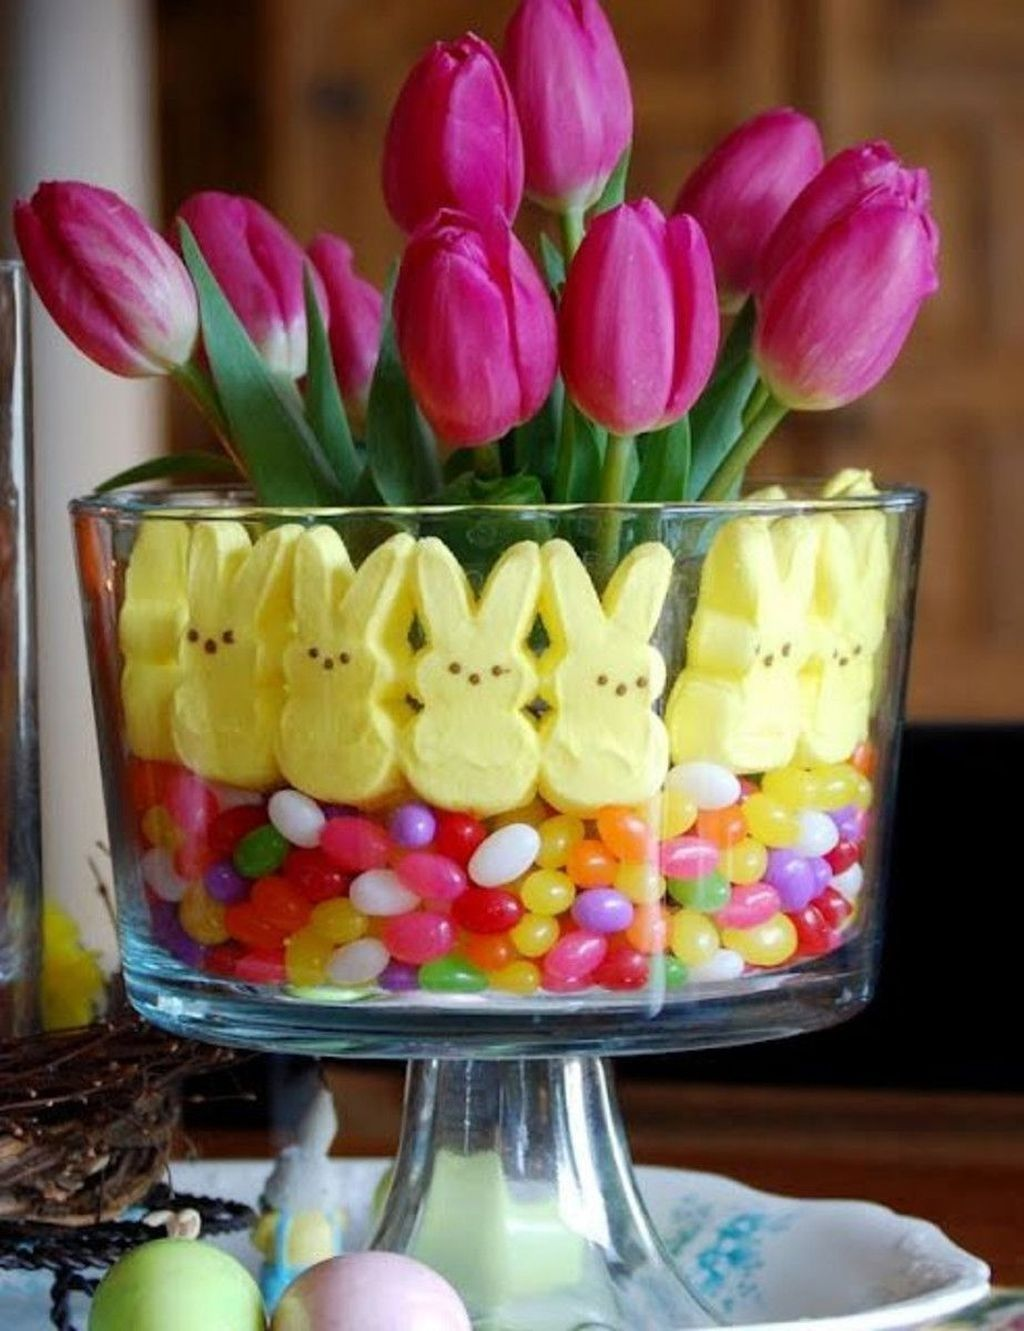 Unusual Easter Centerpieces Table Decor Ideas05 Unusual Easter Centerpieces Table Decor Ideas05 uncategorized